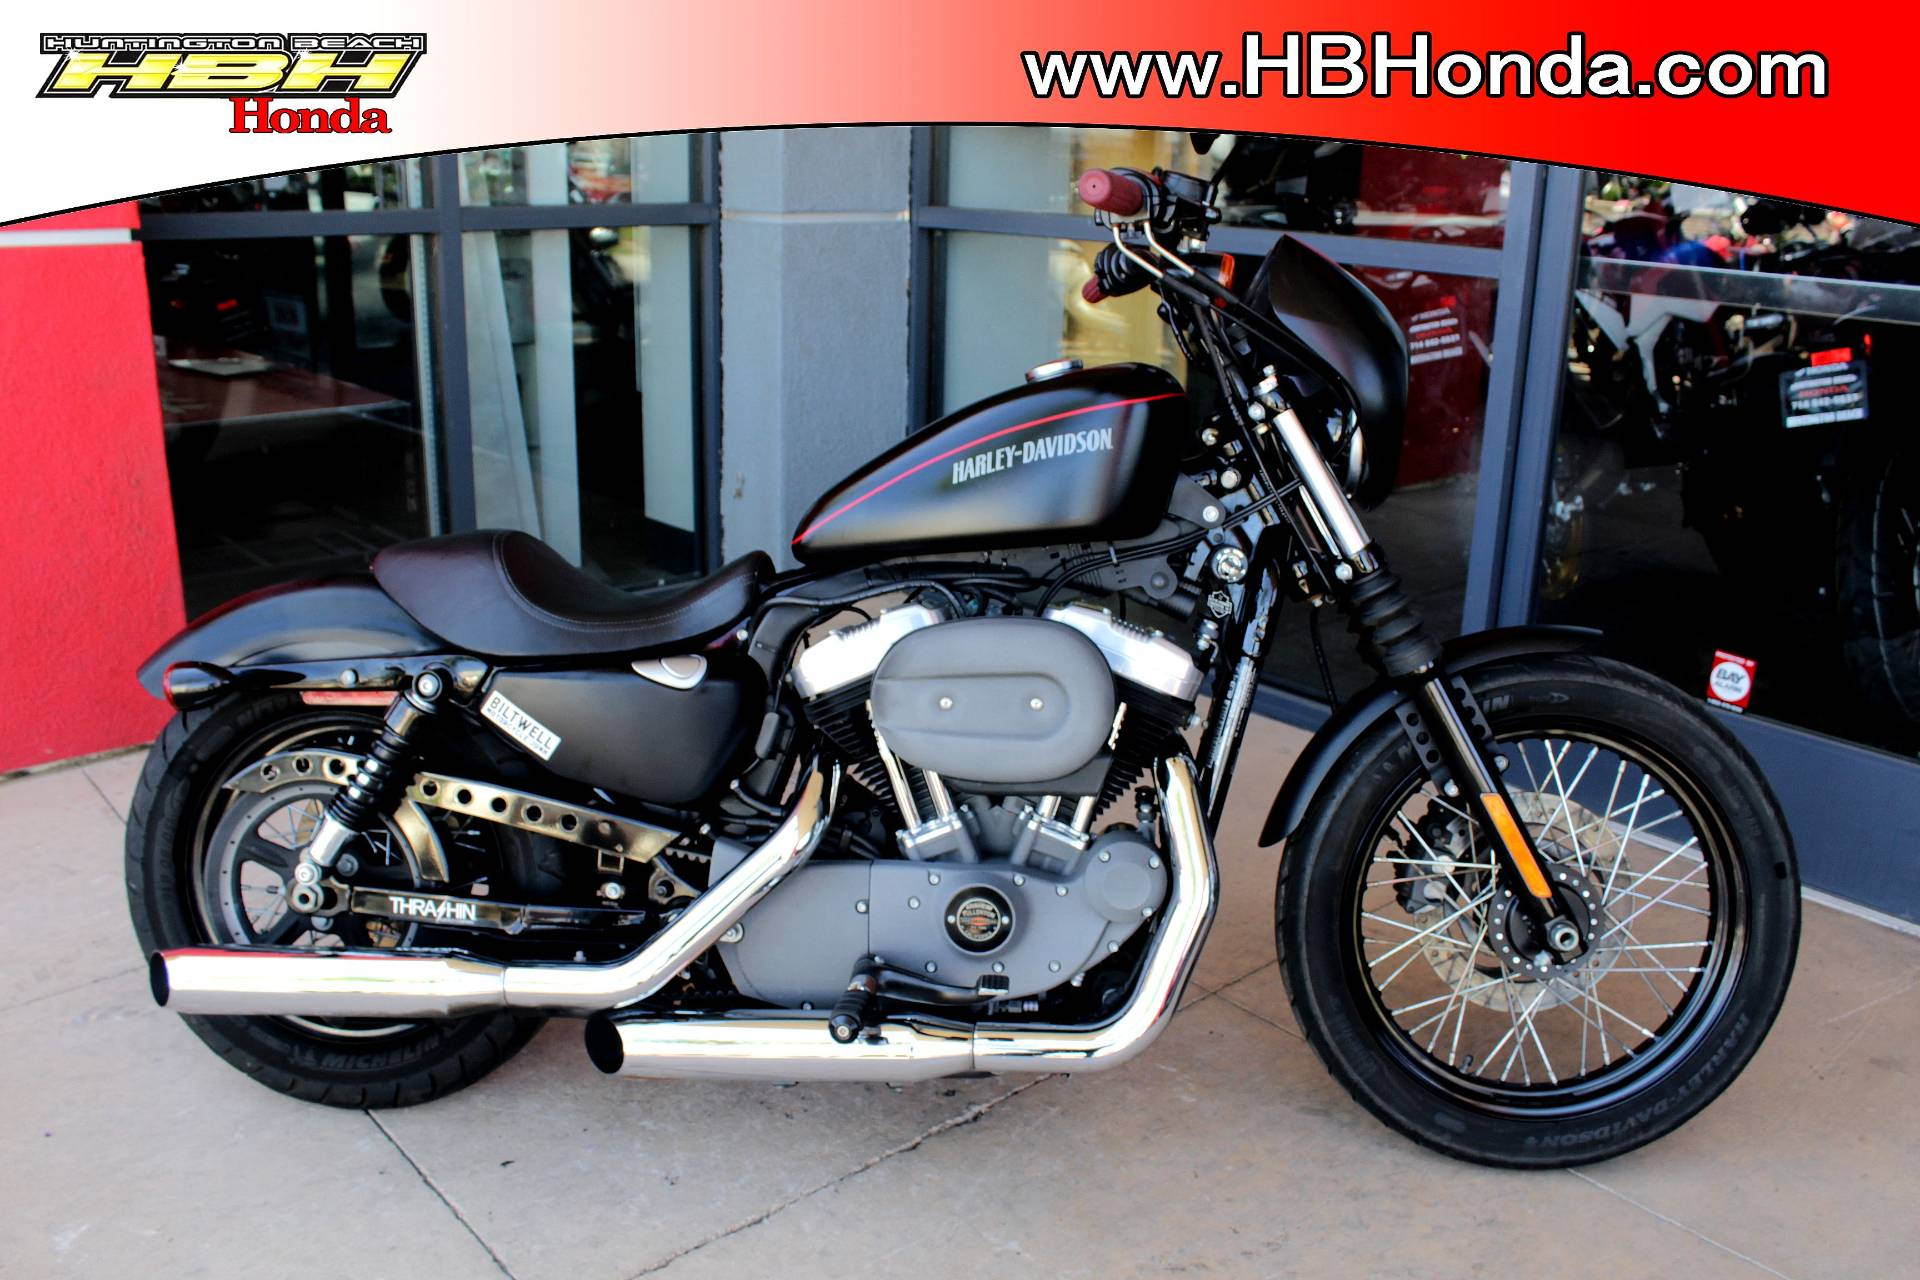 2012 Harley-Davidson Sportster® 1200 Nightster® in Huntington Beach, California - Photo 7